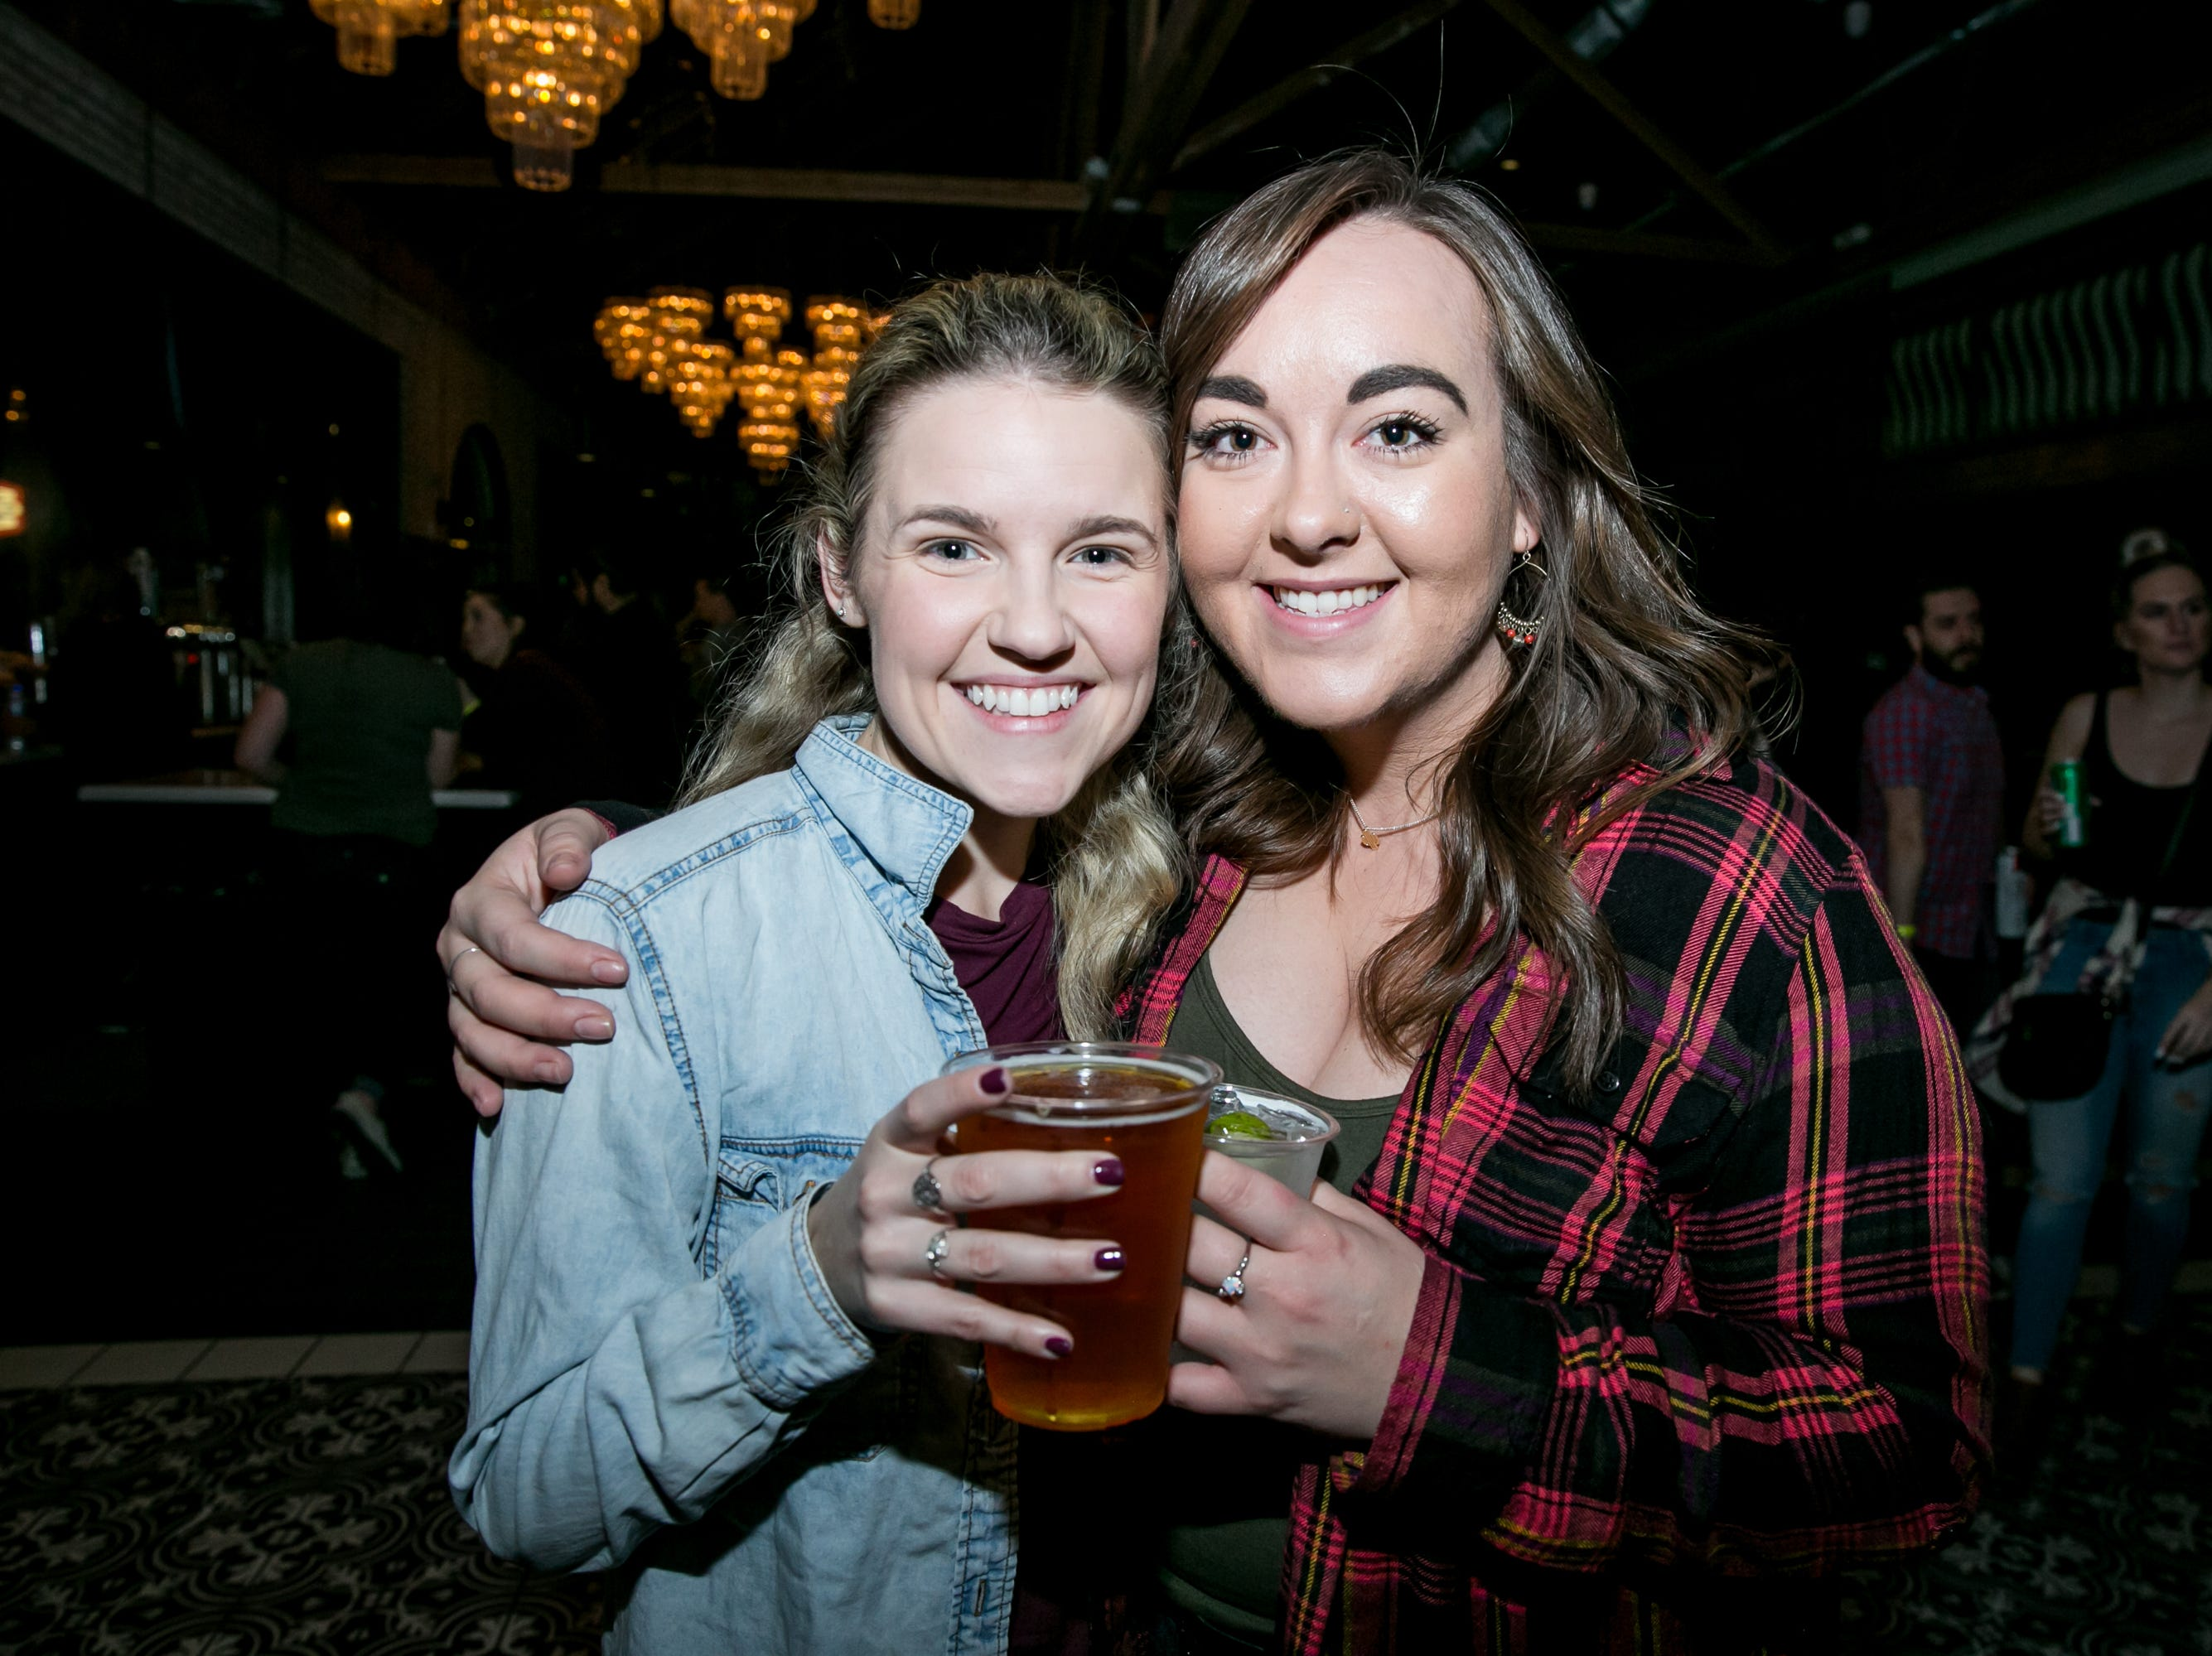 These gals channeled a little Shania during the KMLE Country 90's Throwback at The Van Buren on Friday, Jan. 11, 2019.